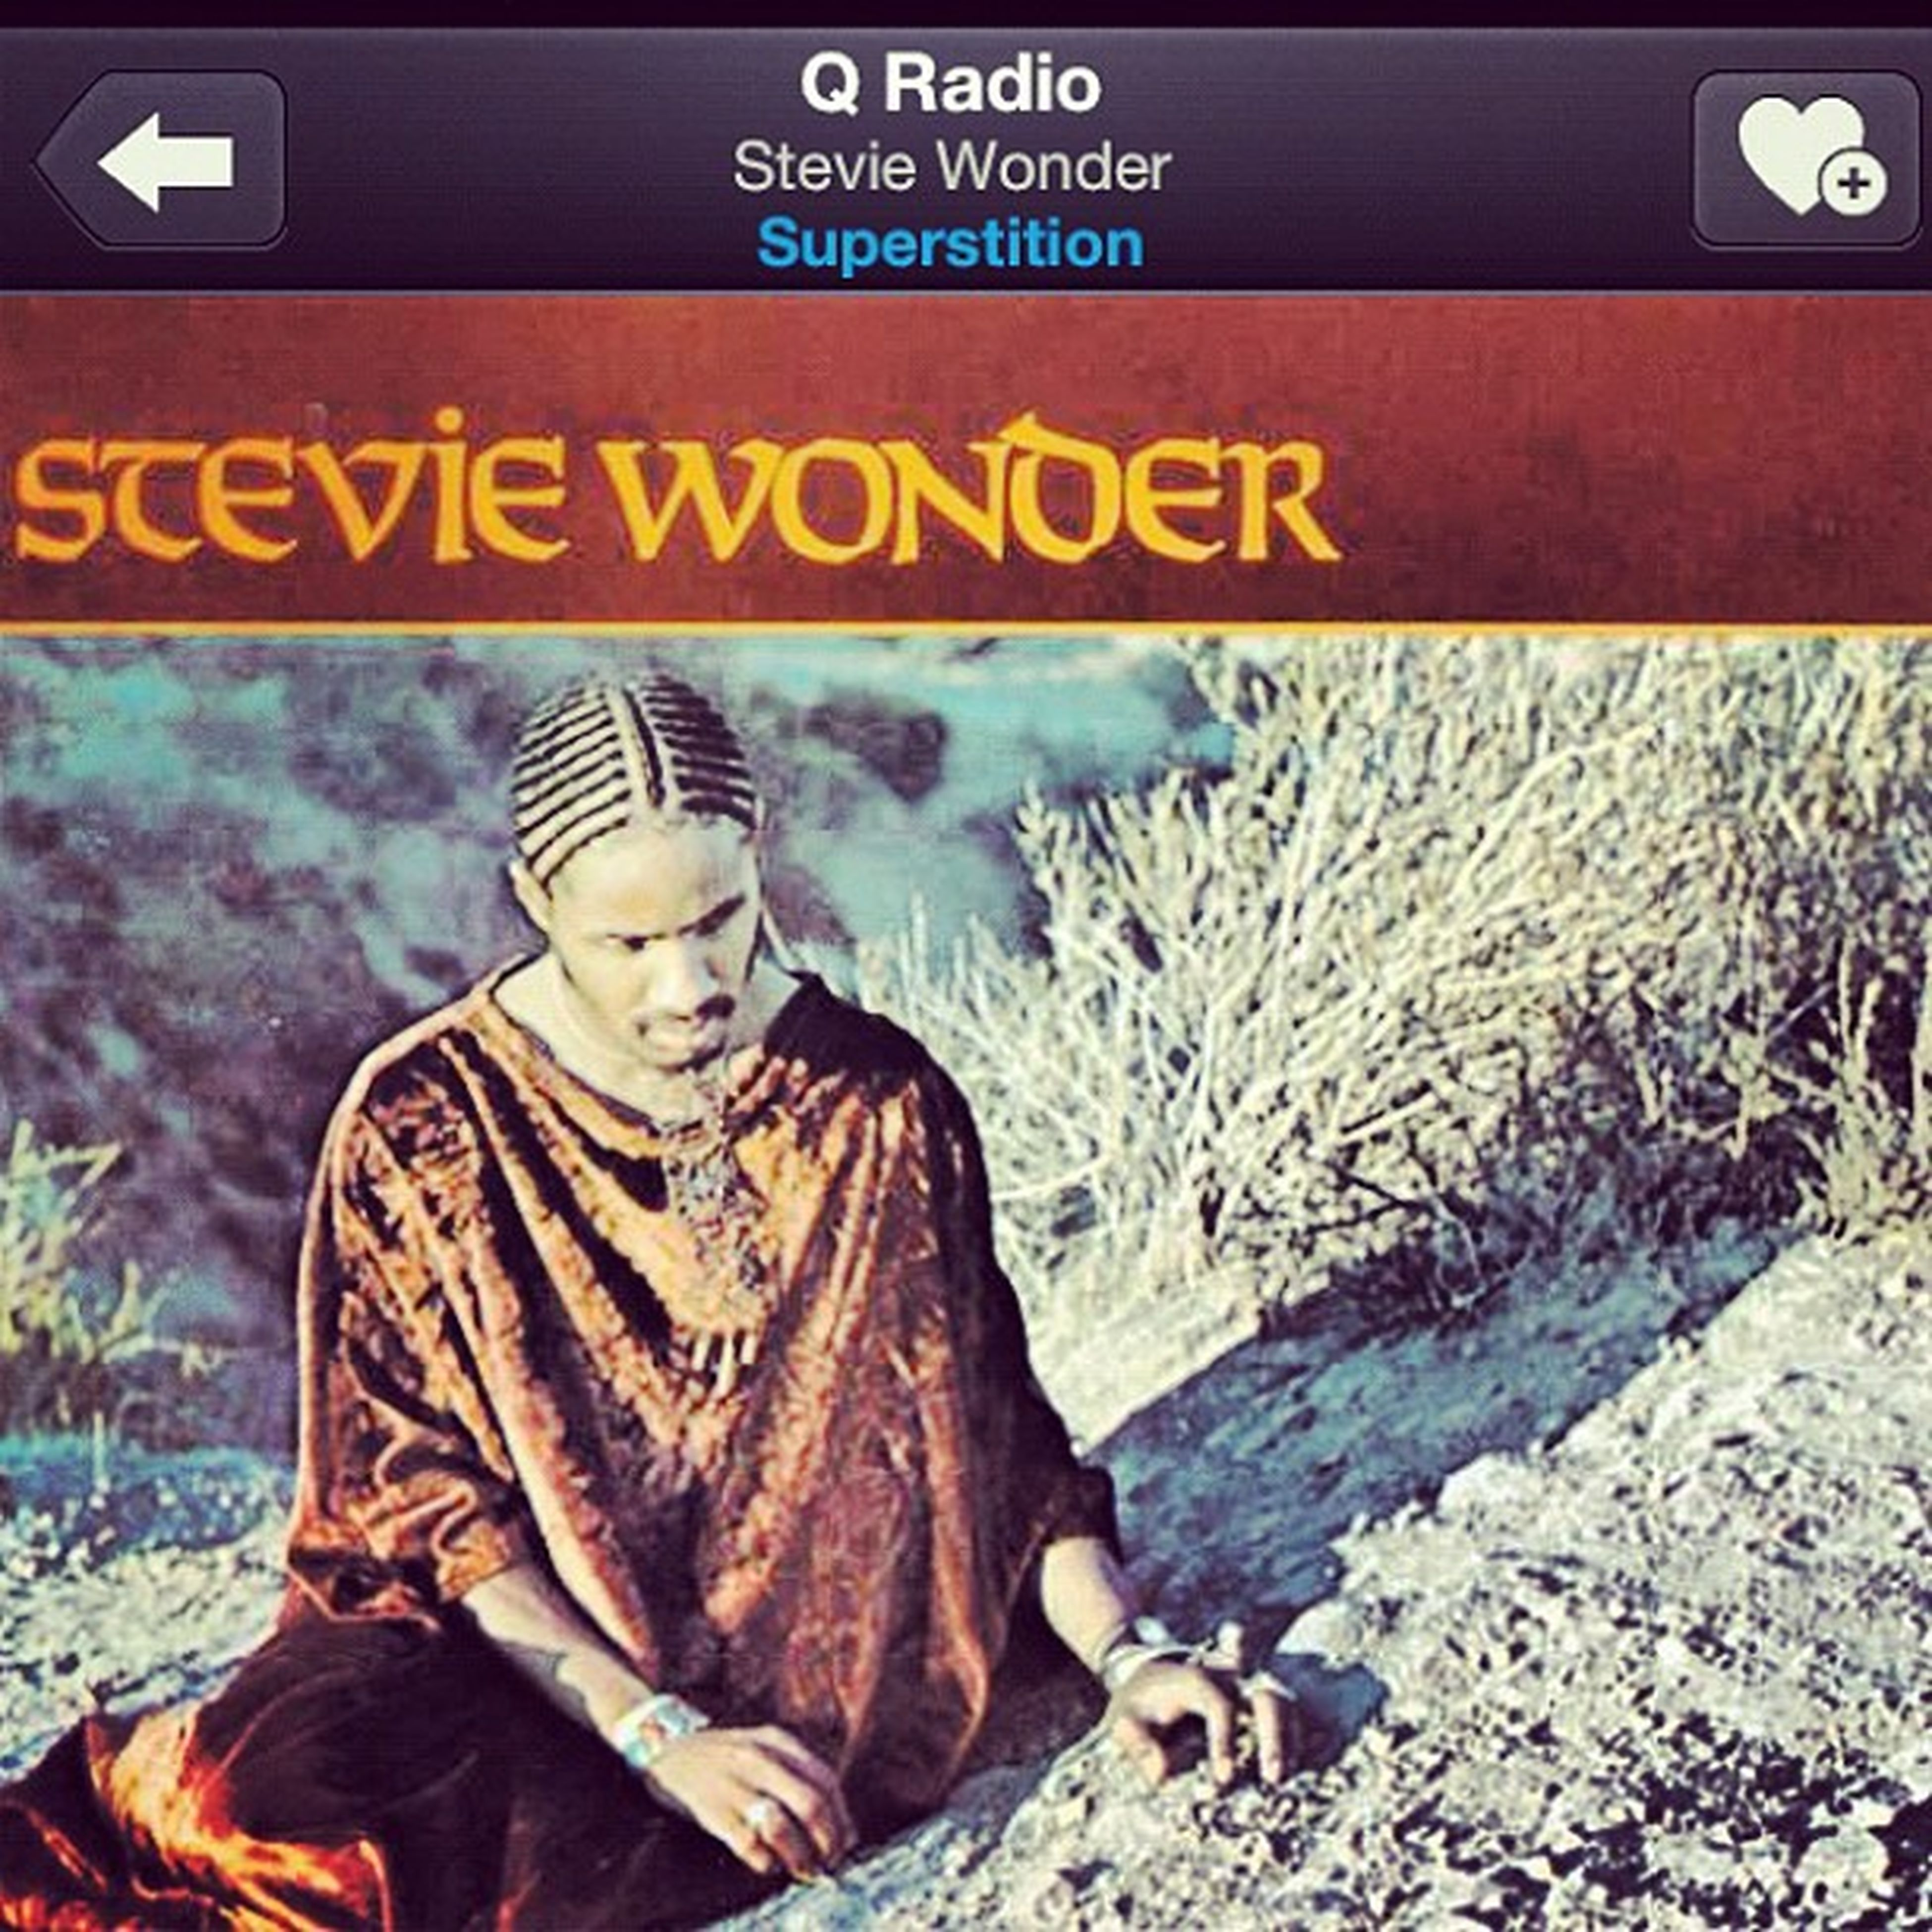 Superstition  Music Qradio Qthemusic iphone iphone4s instagram what a tune awesome